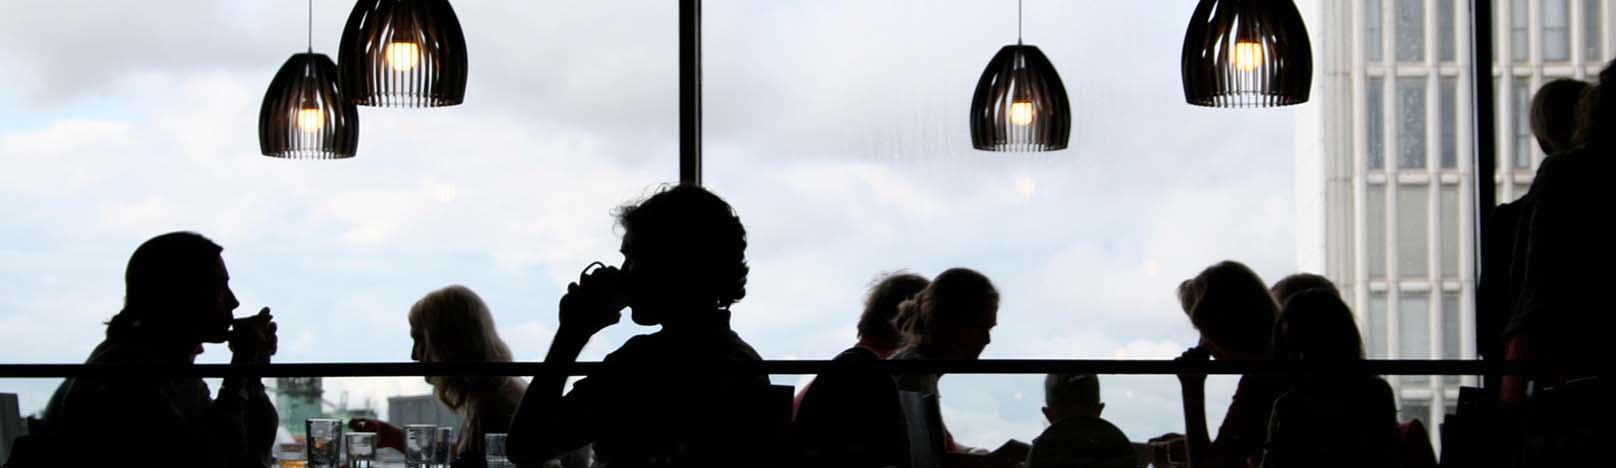 Cafe silhouettes